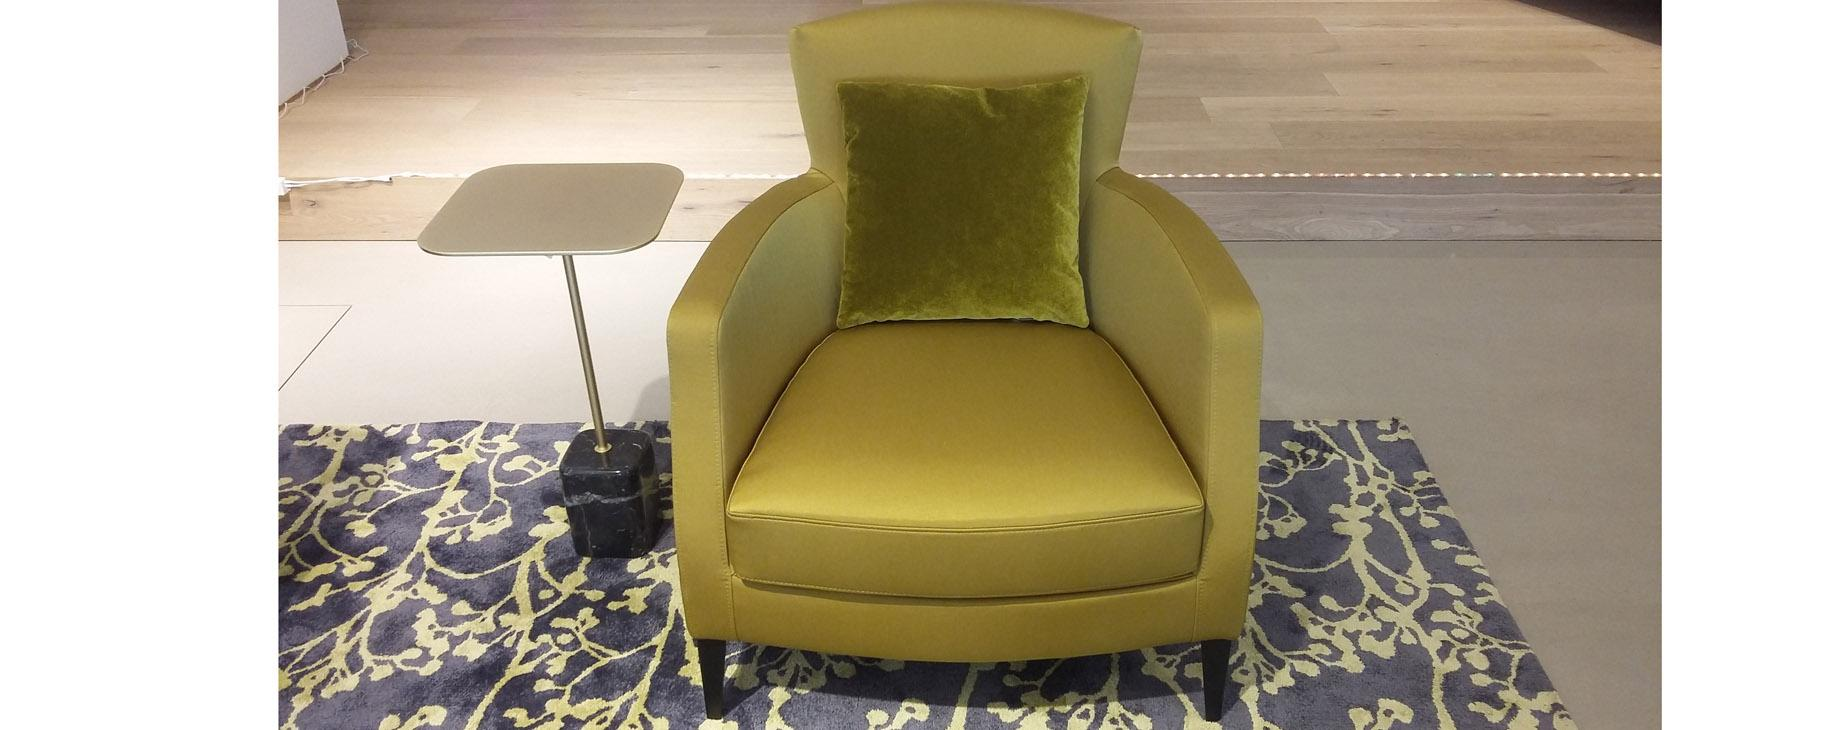 Sessel Kuhfell Ligne Roset Home Image Ideen